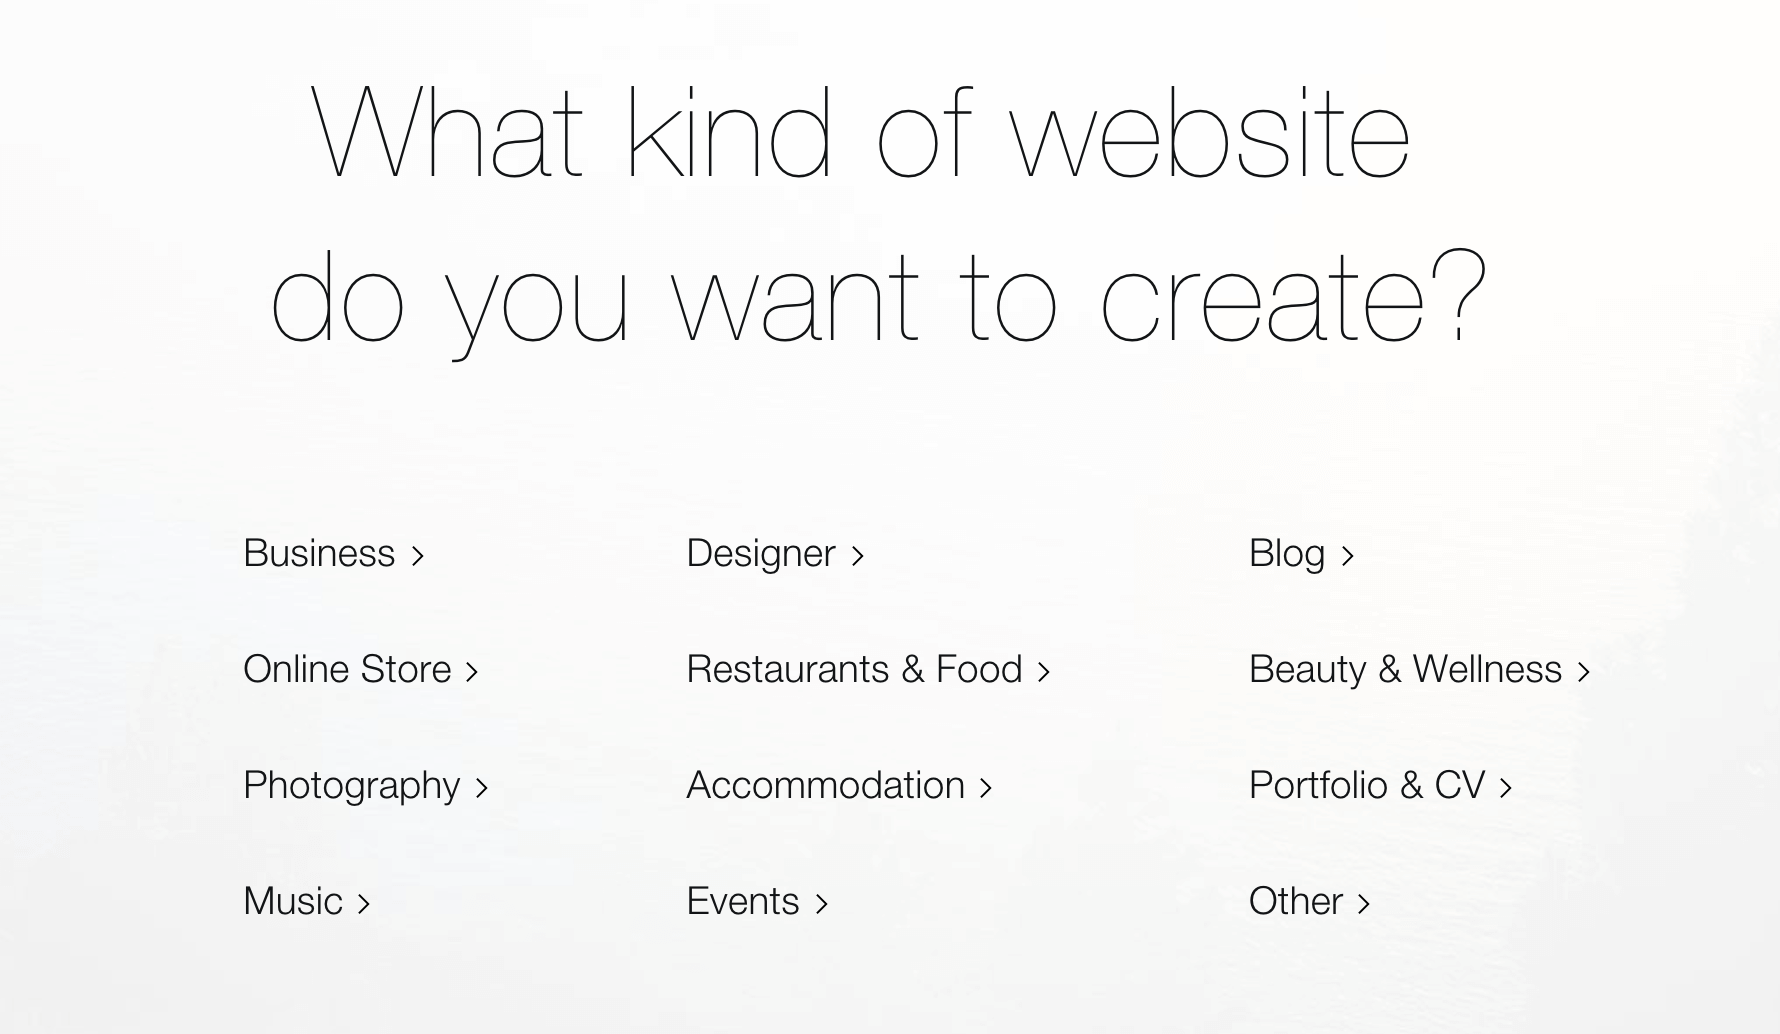 Choosing which type of page to create in Wix.